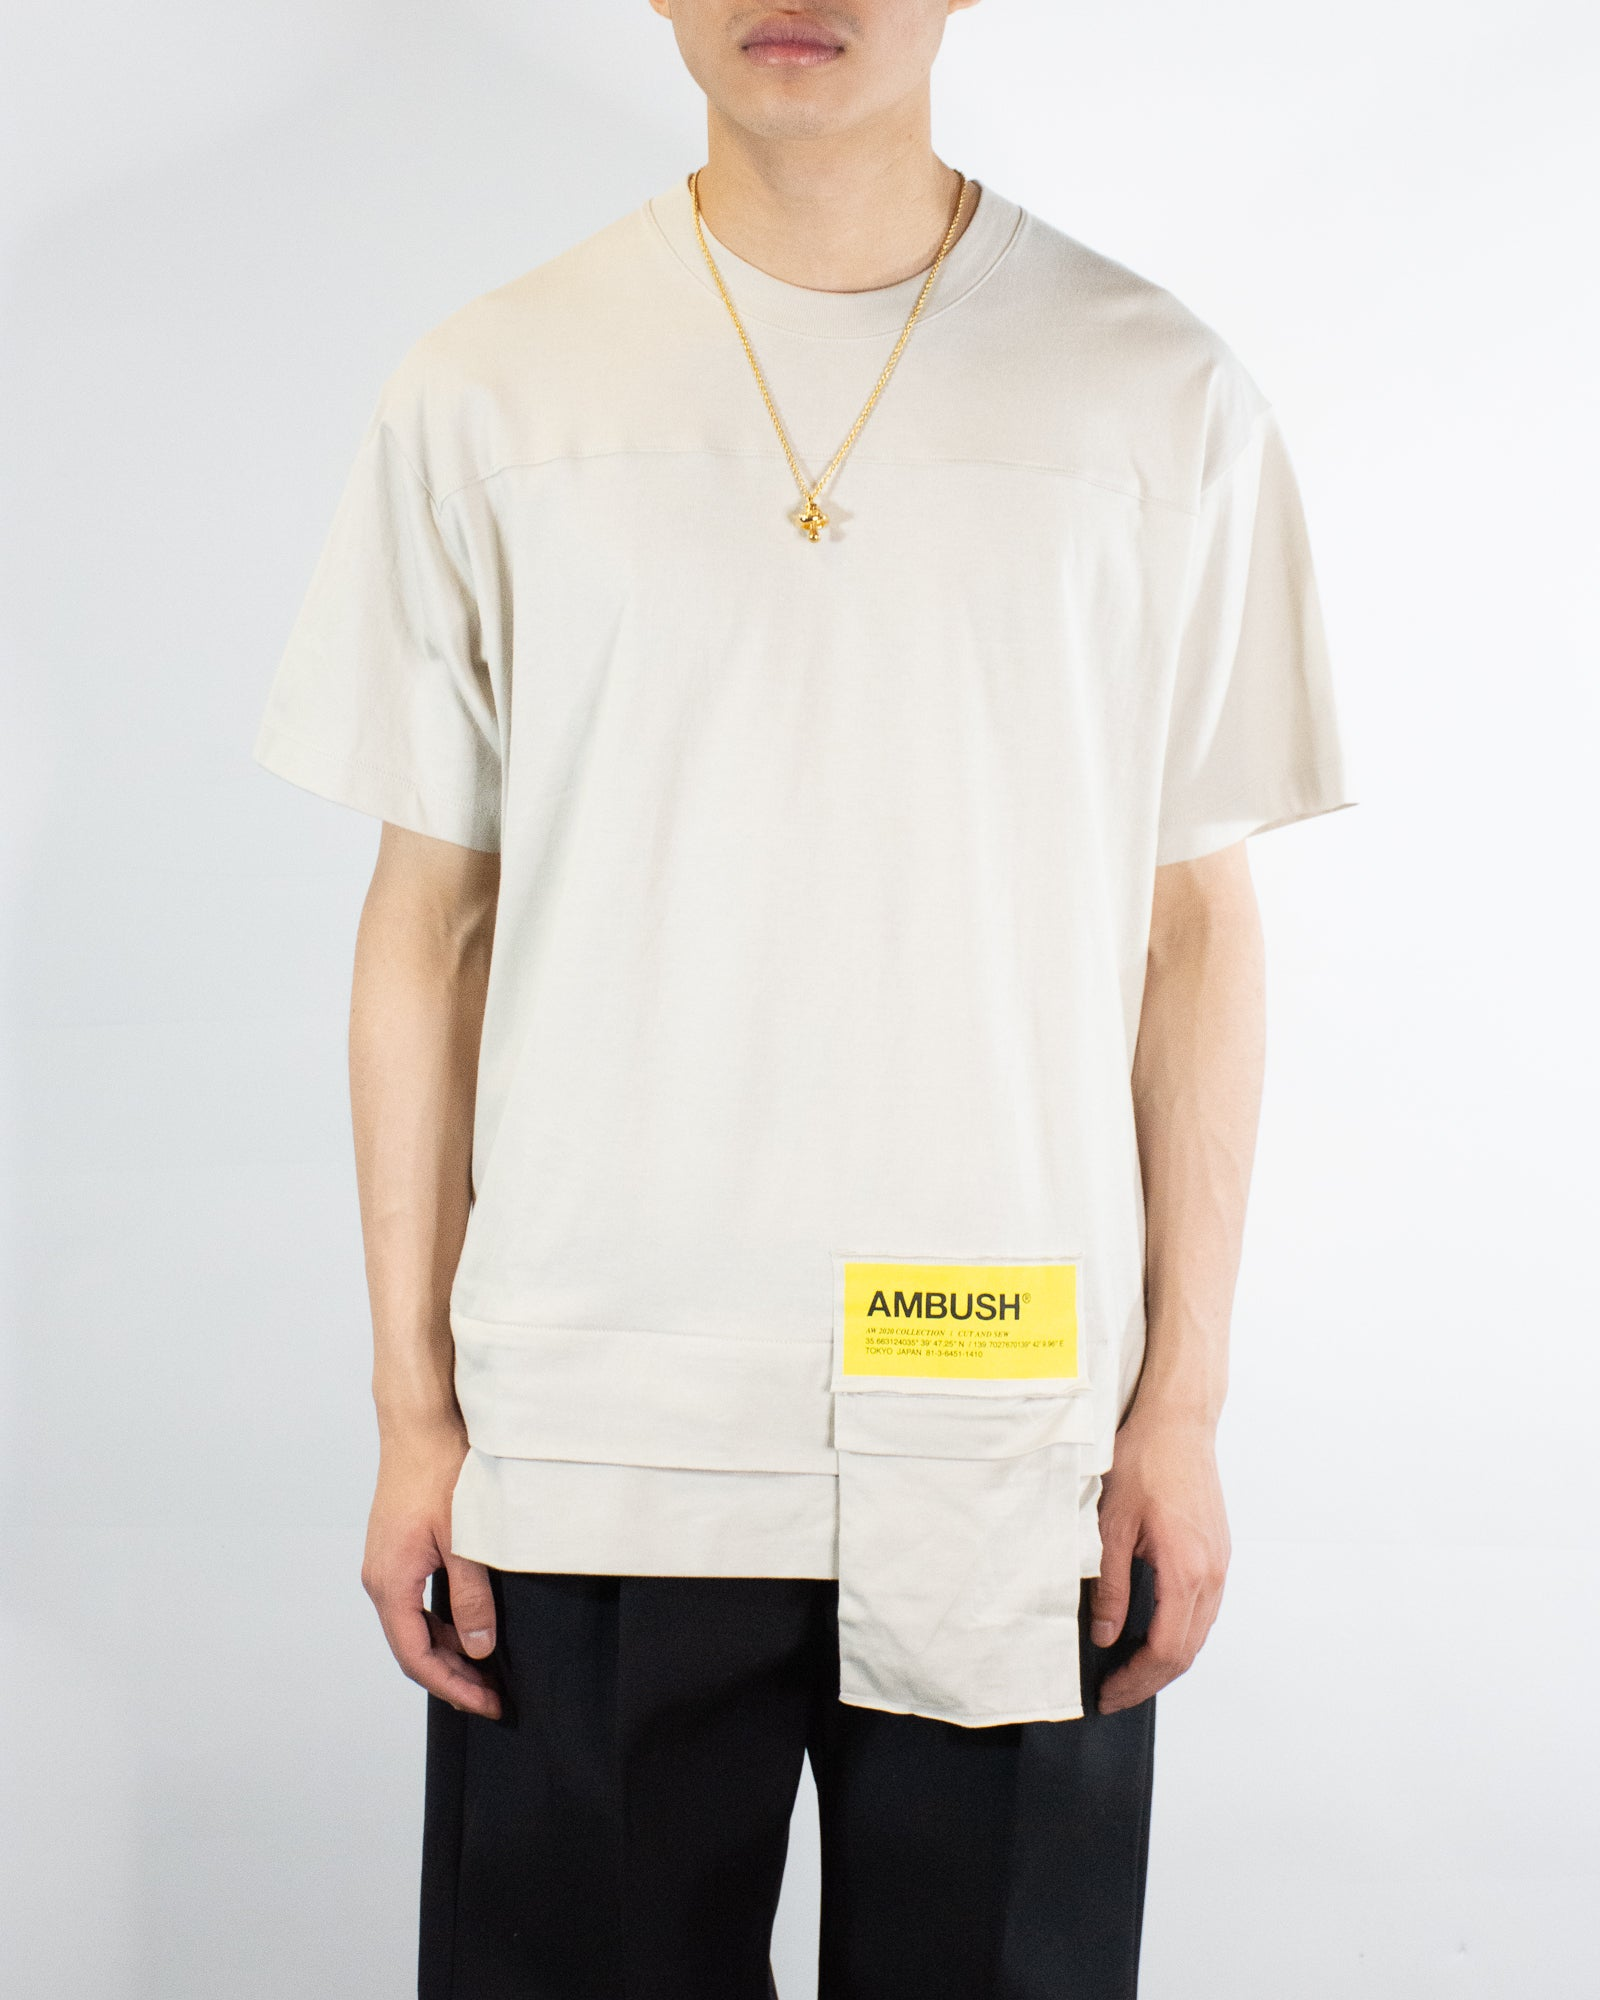 AMBUSH NEW WAIST POCKET TEE